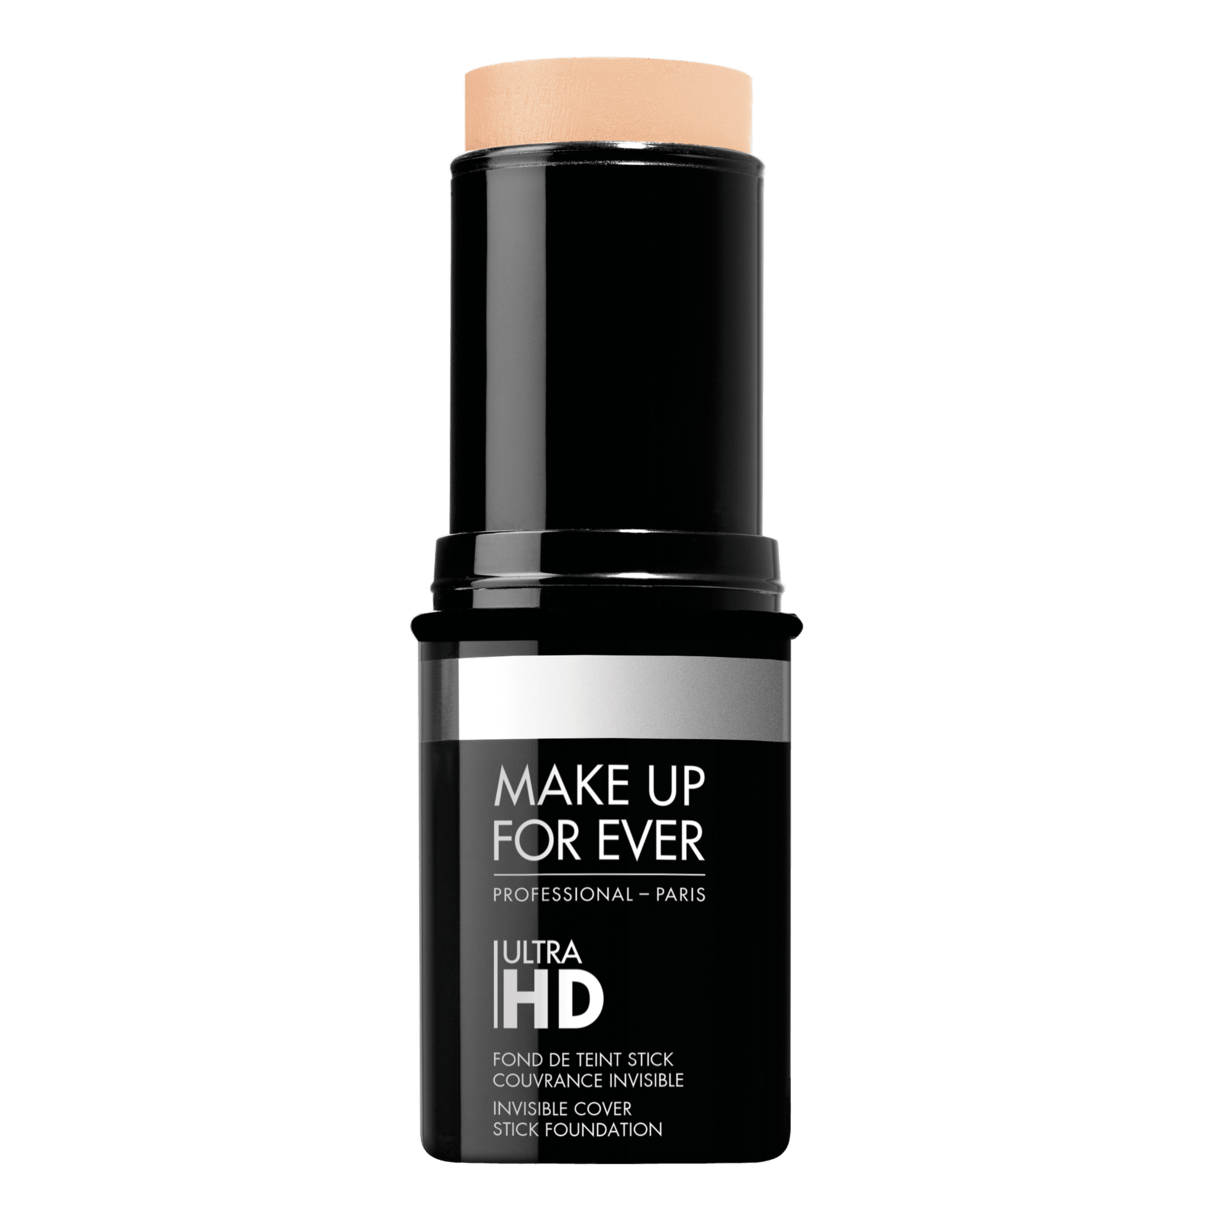 MAKE UP FOR EVER Ultra HD Stick Foundation by MAKE UP FOR EVER